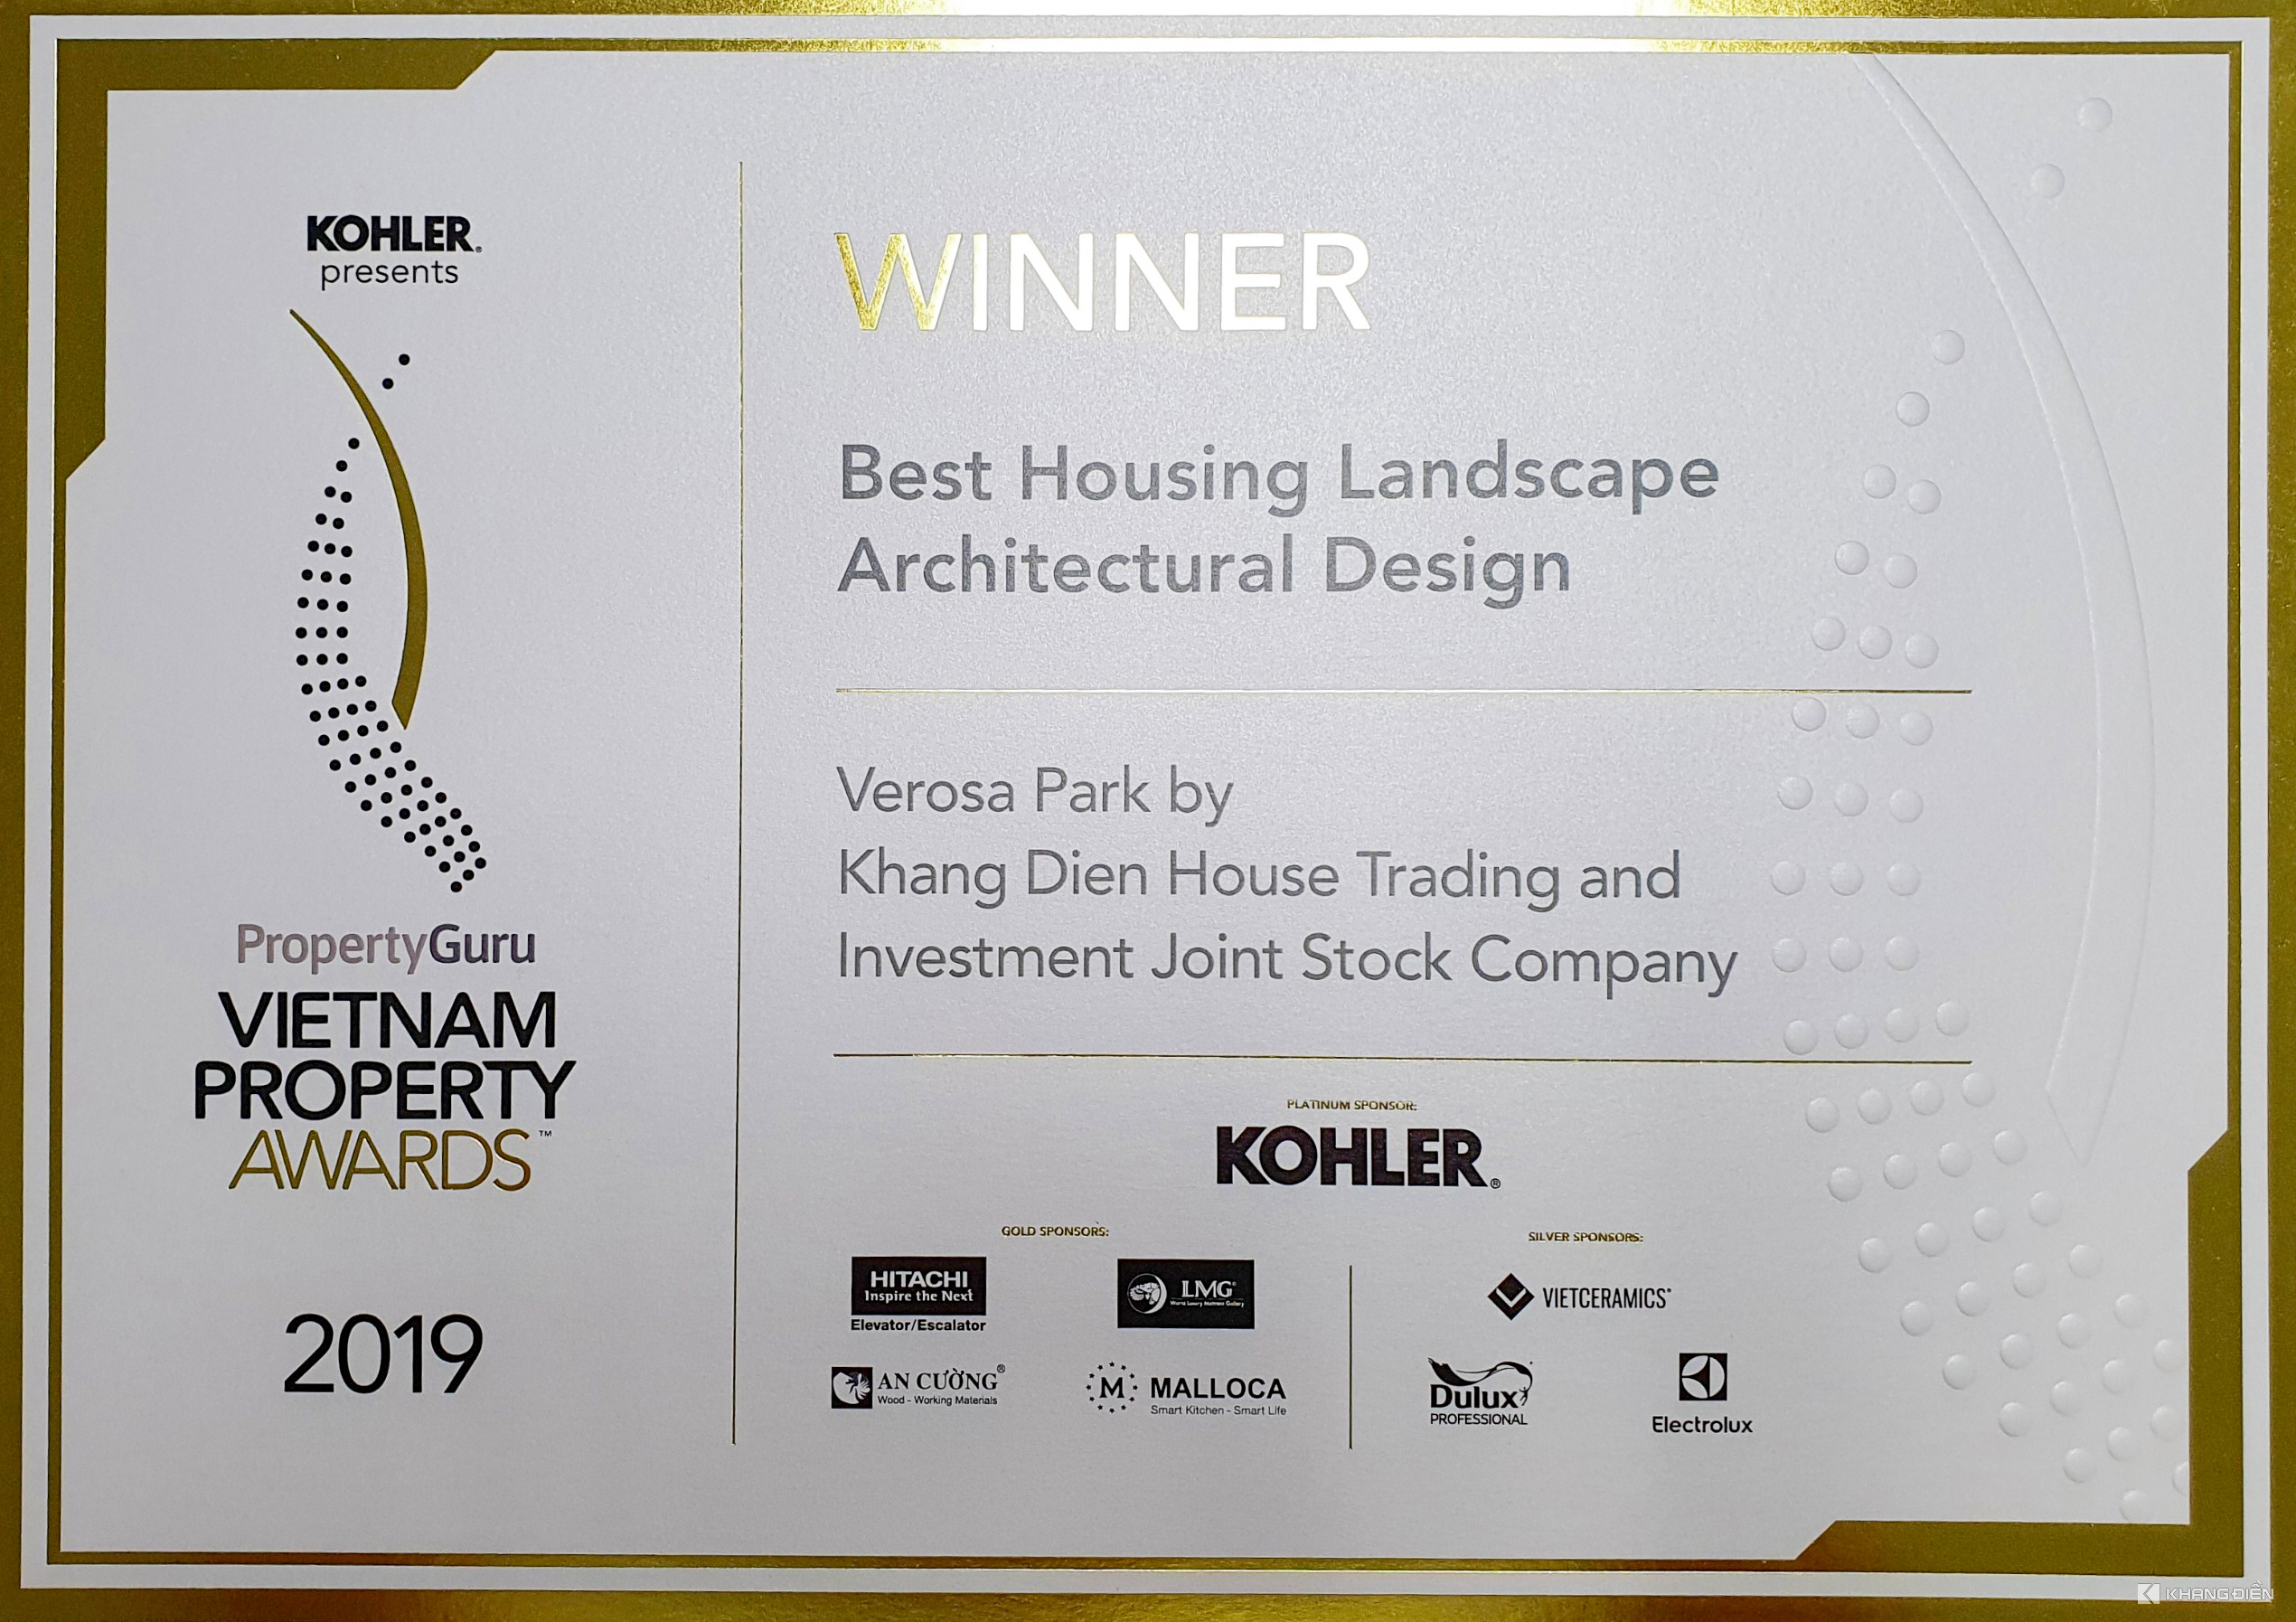 BEST HOUSING LANDSCAPE ARCHITECTURAL DESIGN - VIETNAM PROPERTY AWARDS 2019